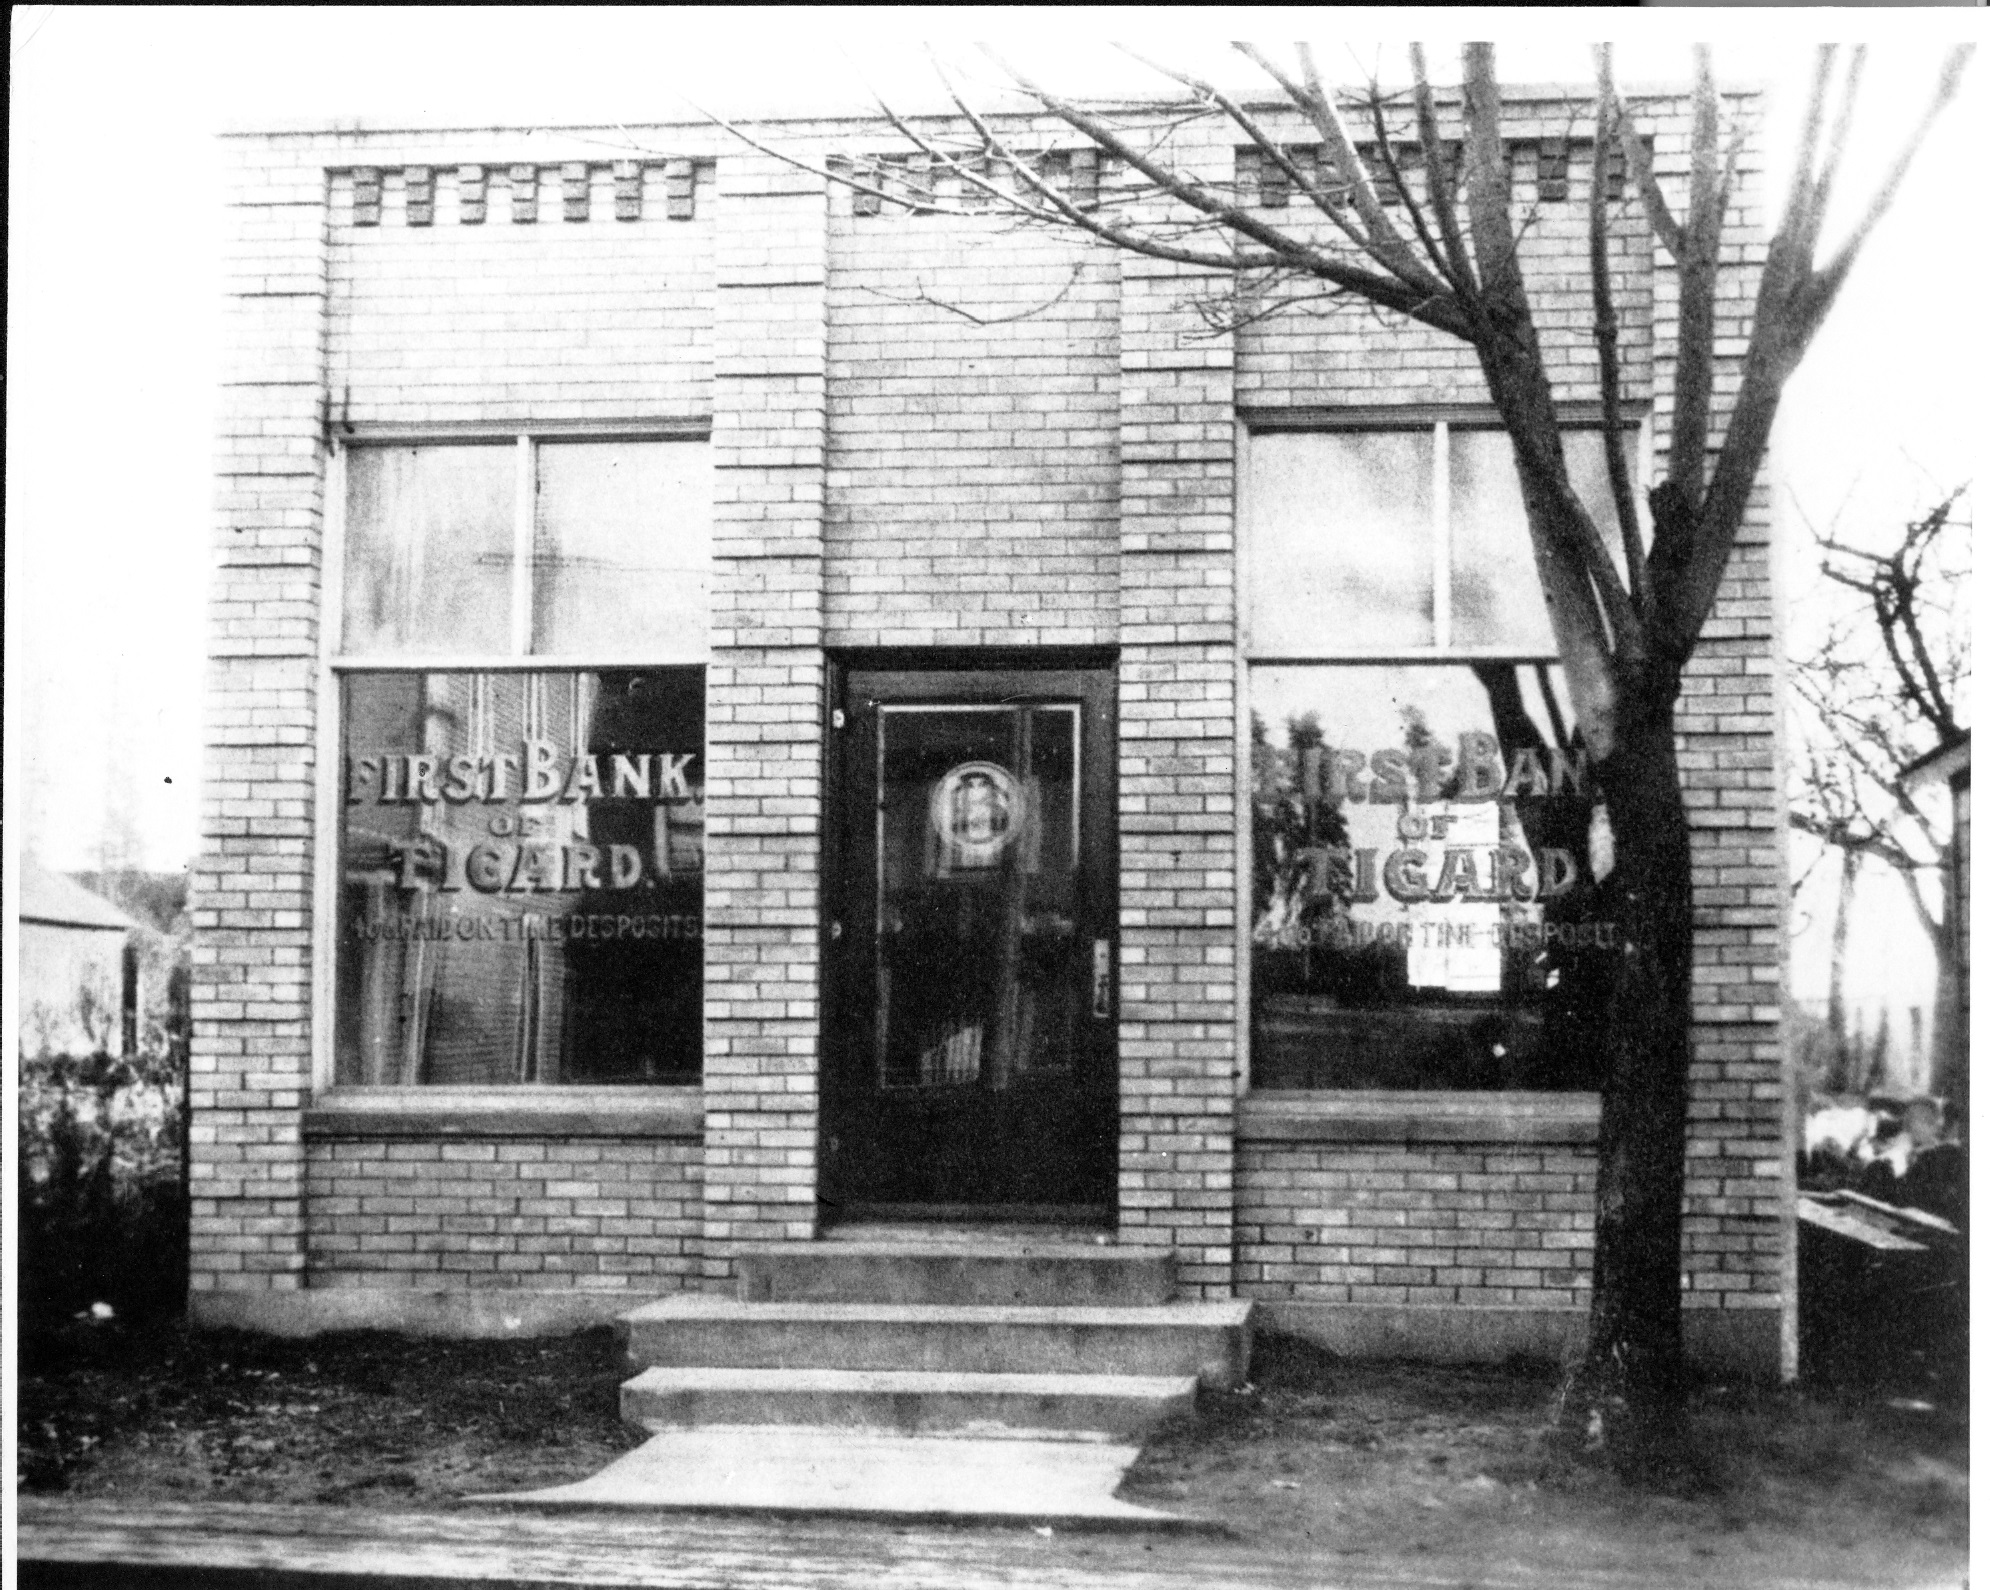 First Bank of Tigard 1920.jpg